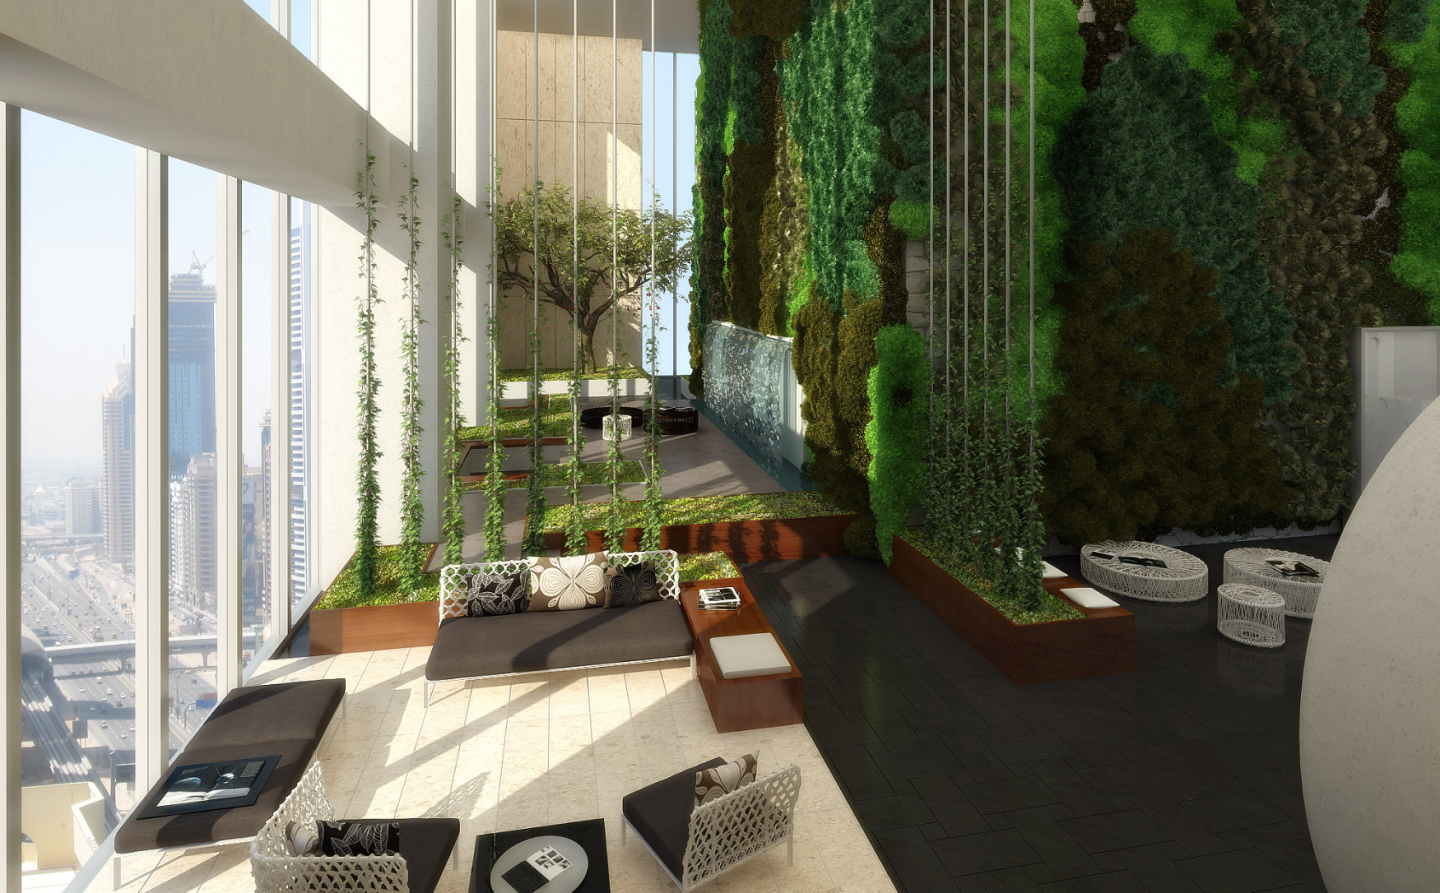 The tower offers two floors of tranquil gardens, including trees and planted walls.